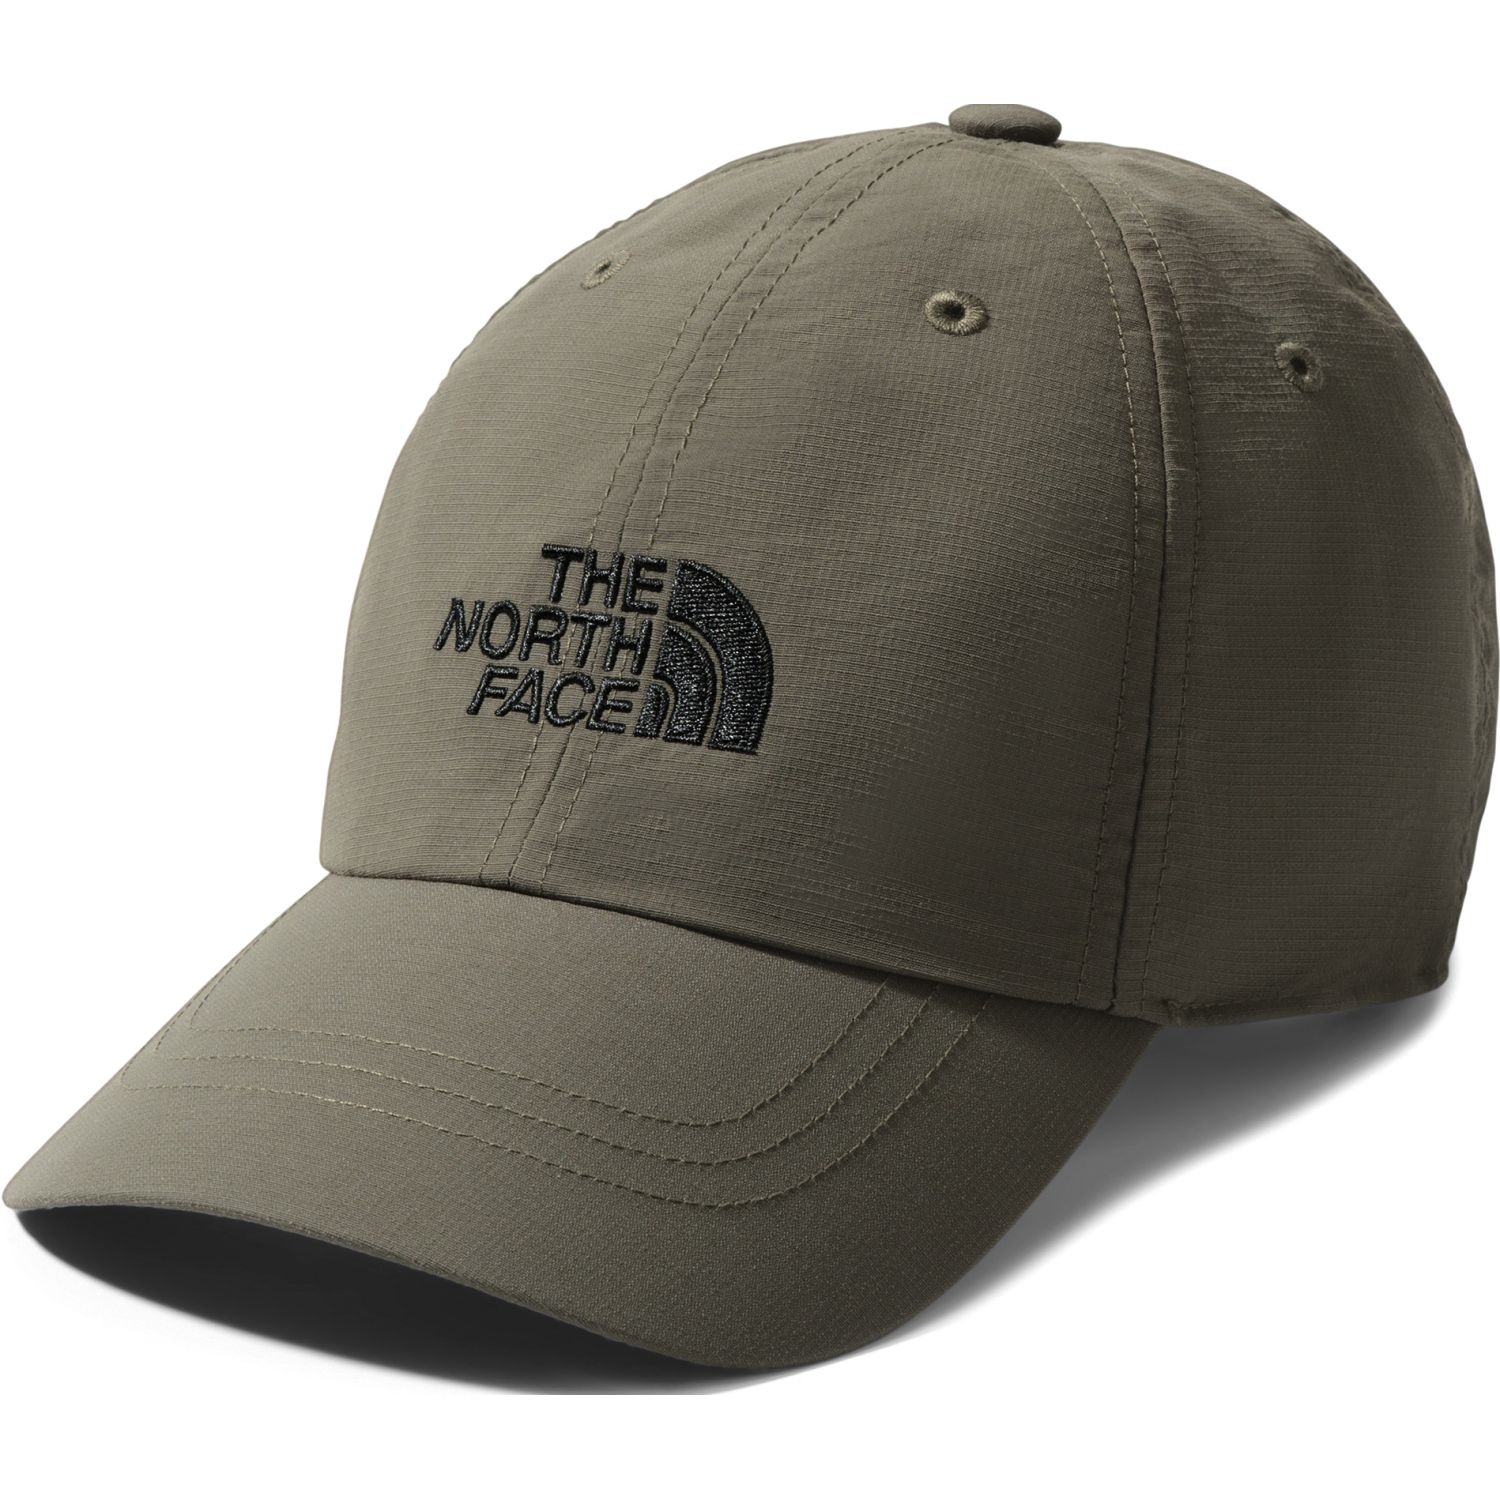 The North Face YOUTH HORIZON HAT VERDE MILITAR Sombreros y Gorros